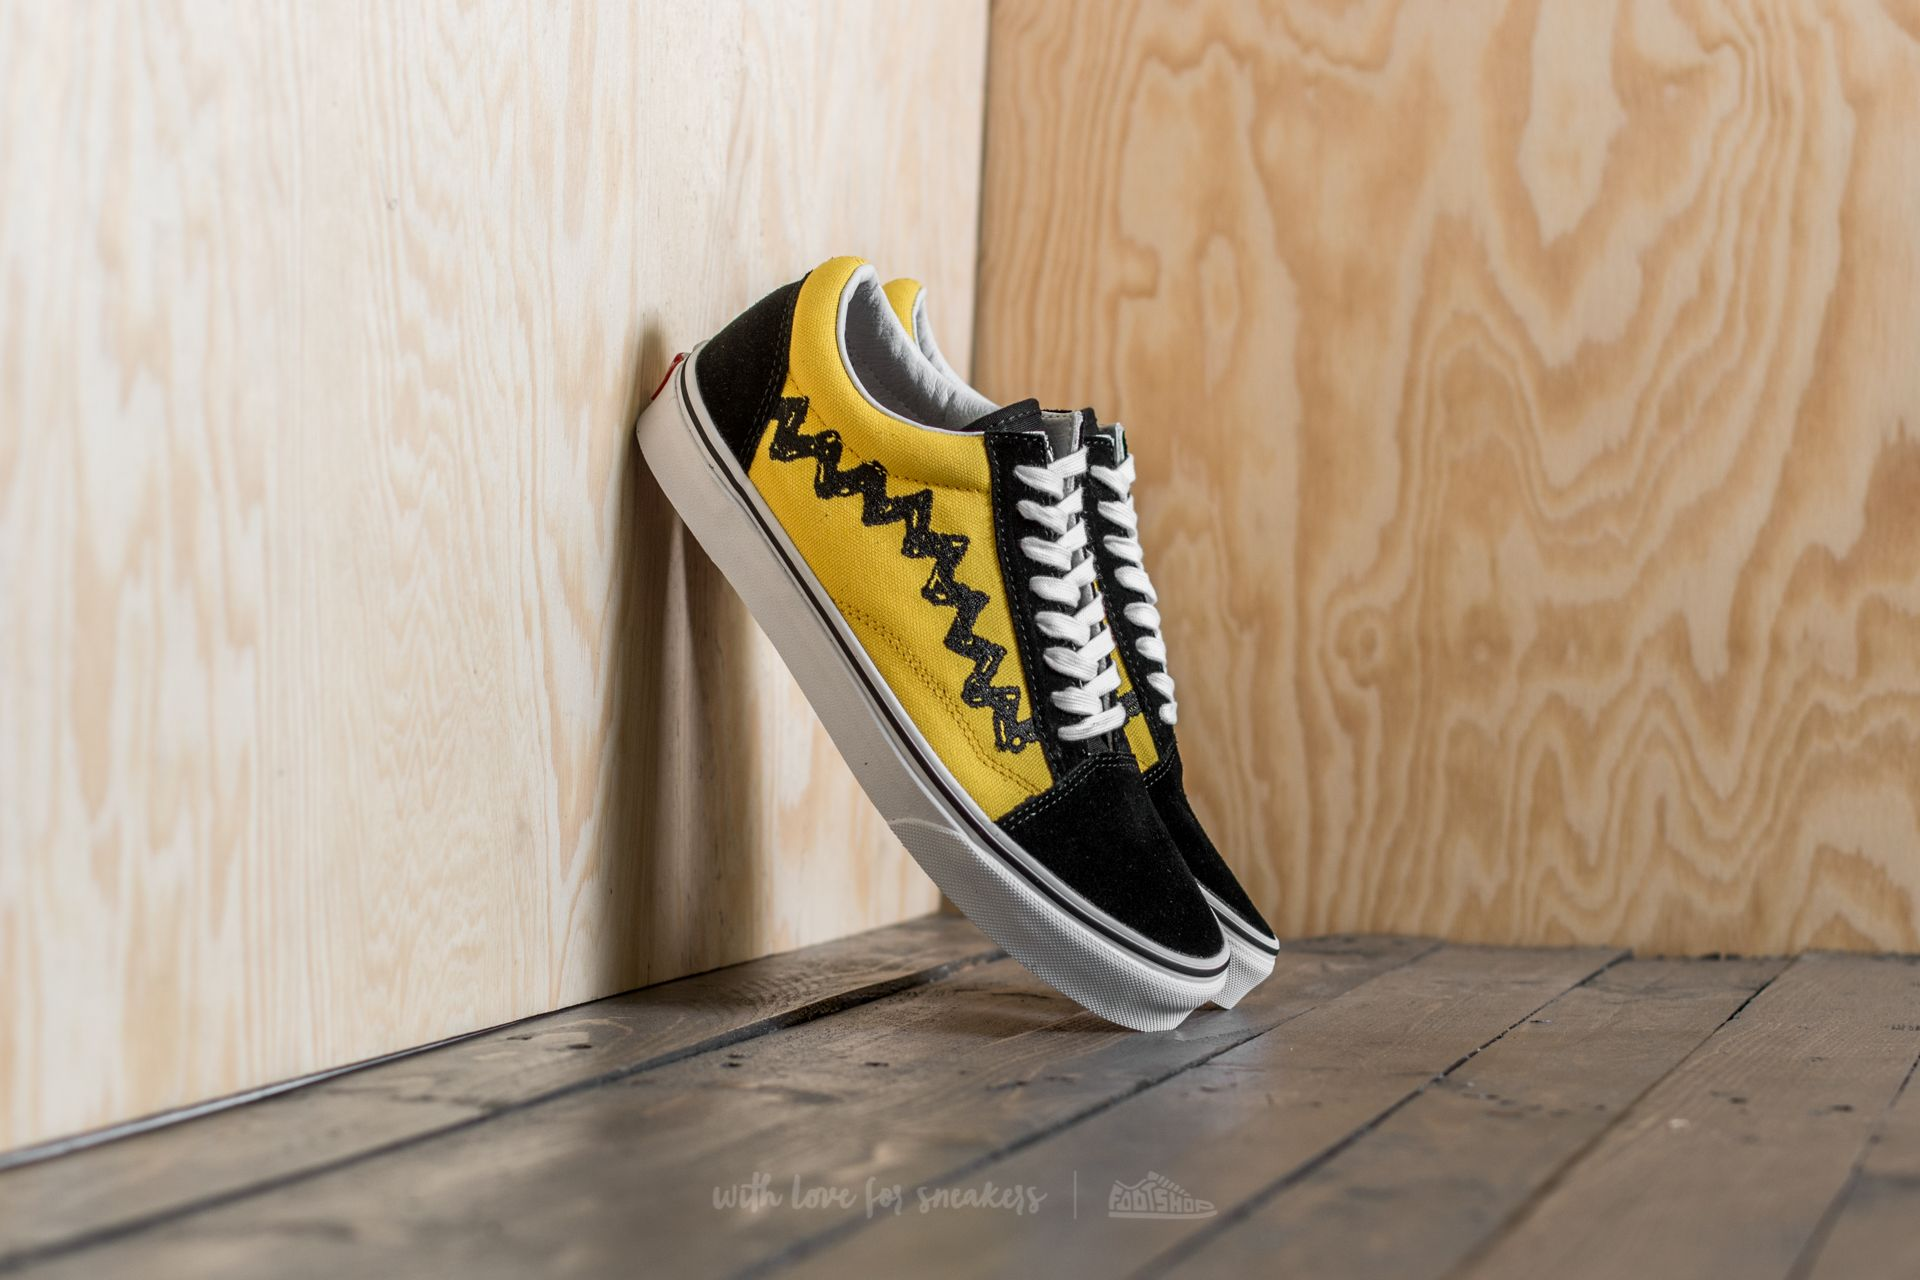 vans x peanuts old skool yellow